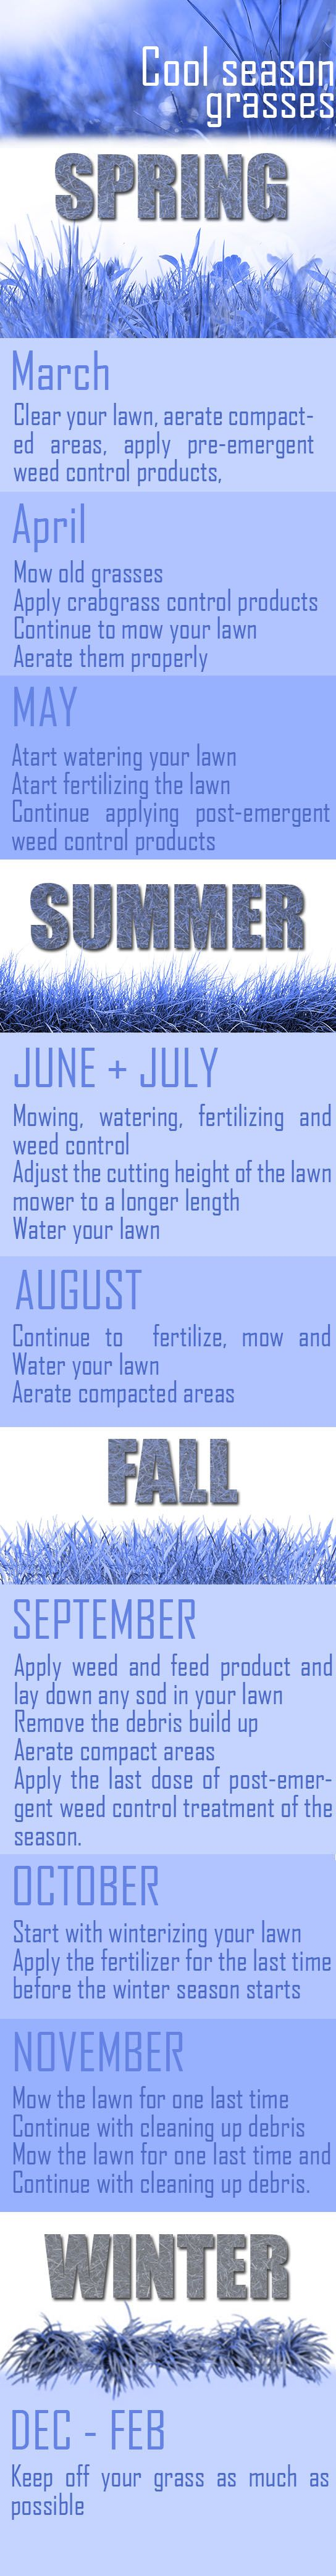 Lawn fertilizing schedule for cool-season grasses | www.goldensunlandscapingsvc.com